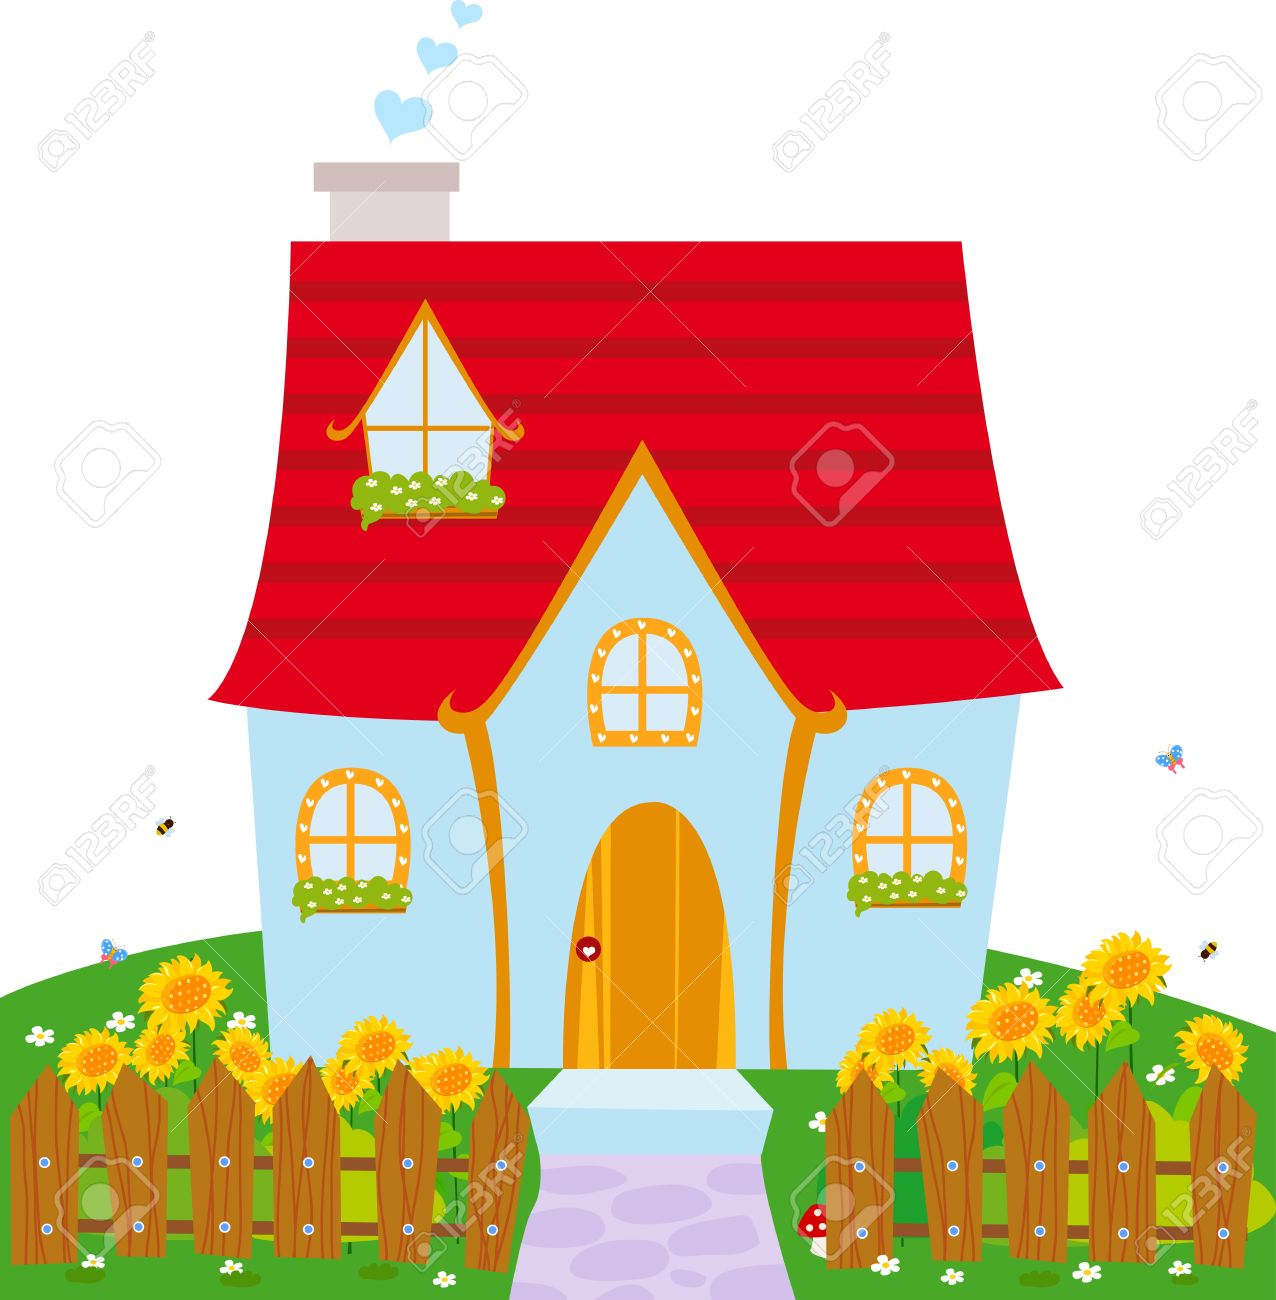 Little house clipart clipground for Ome images